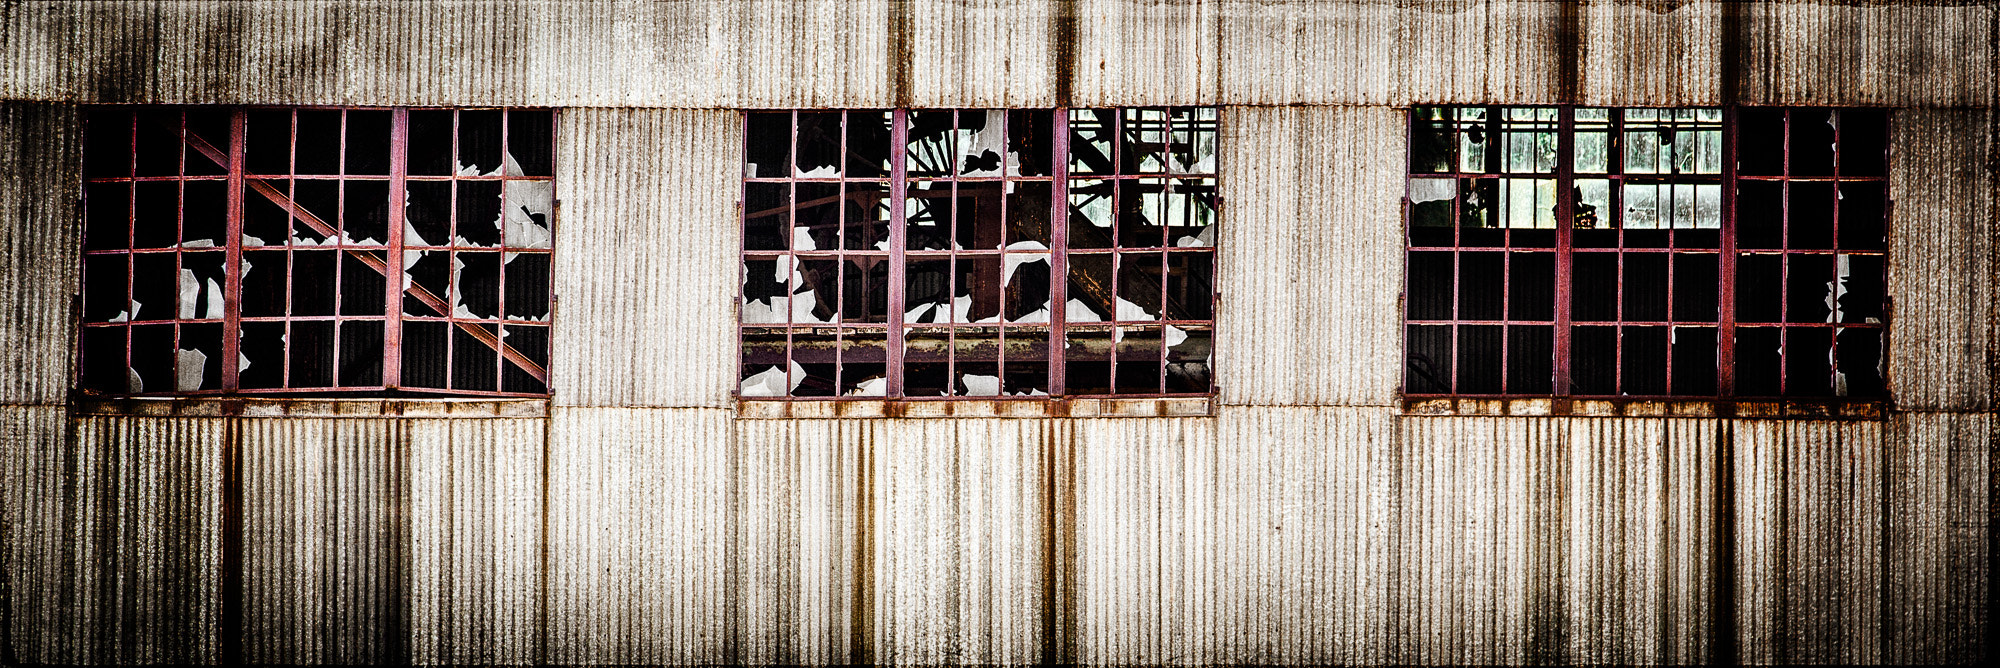 Photograph Three Windows by Paul Bartell on 500px